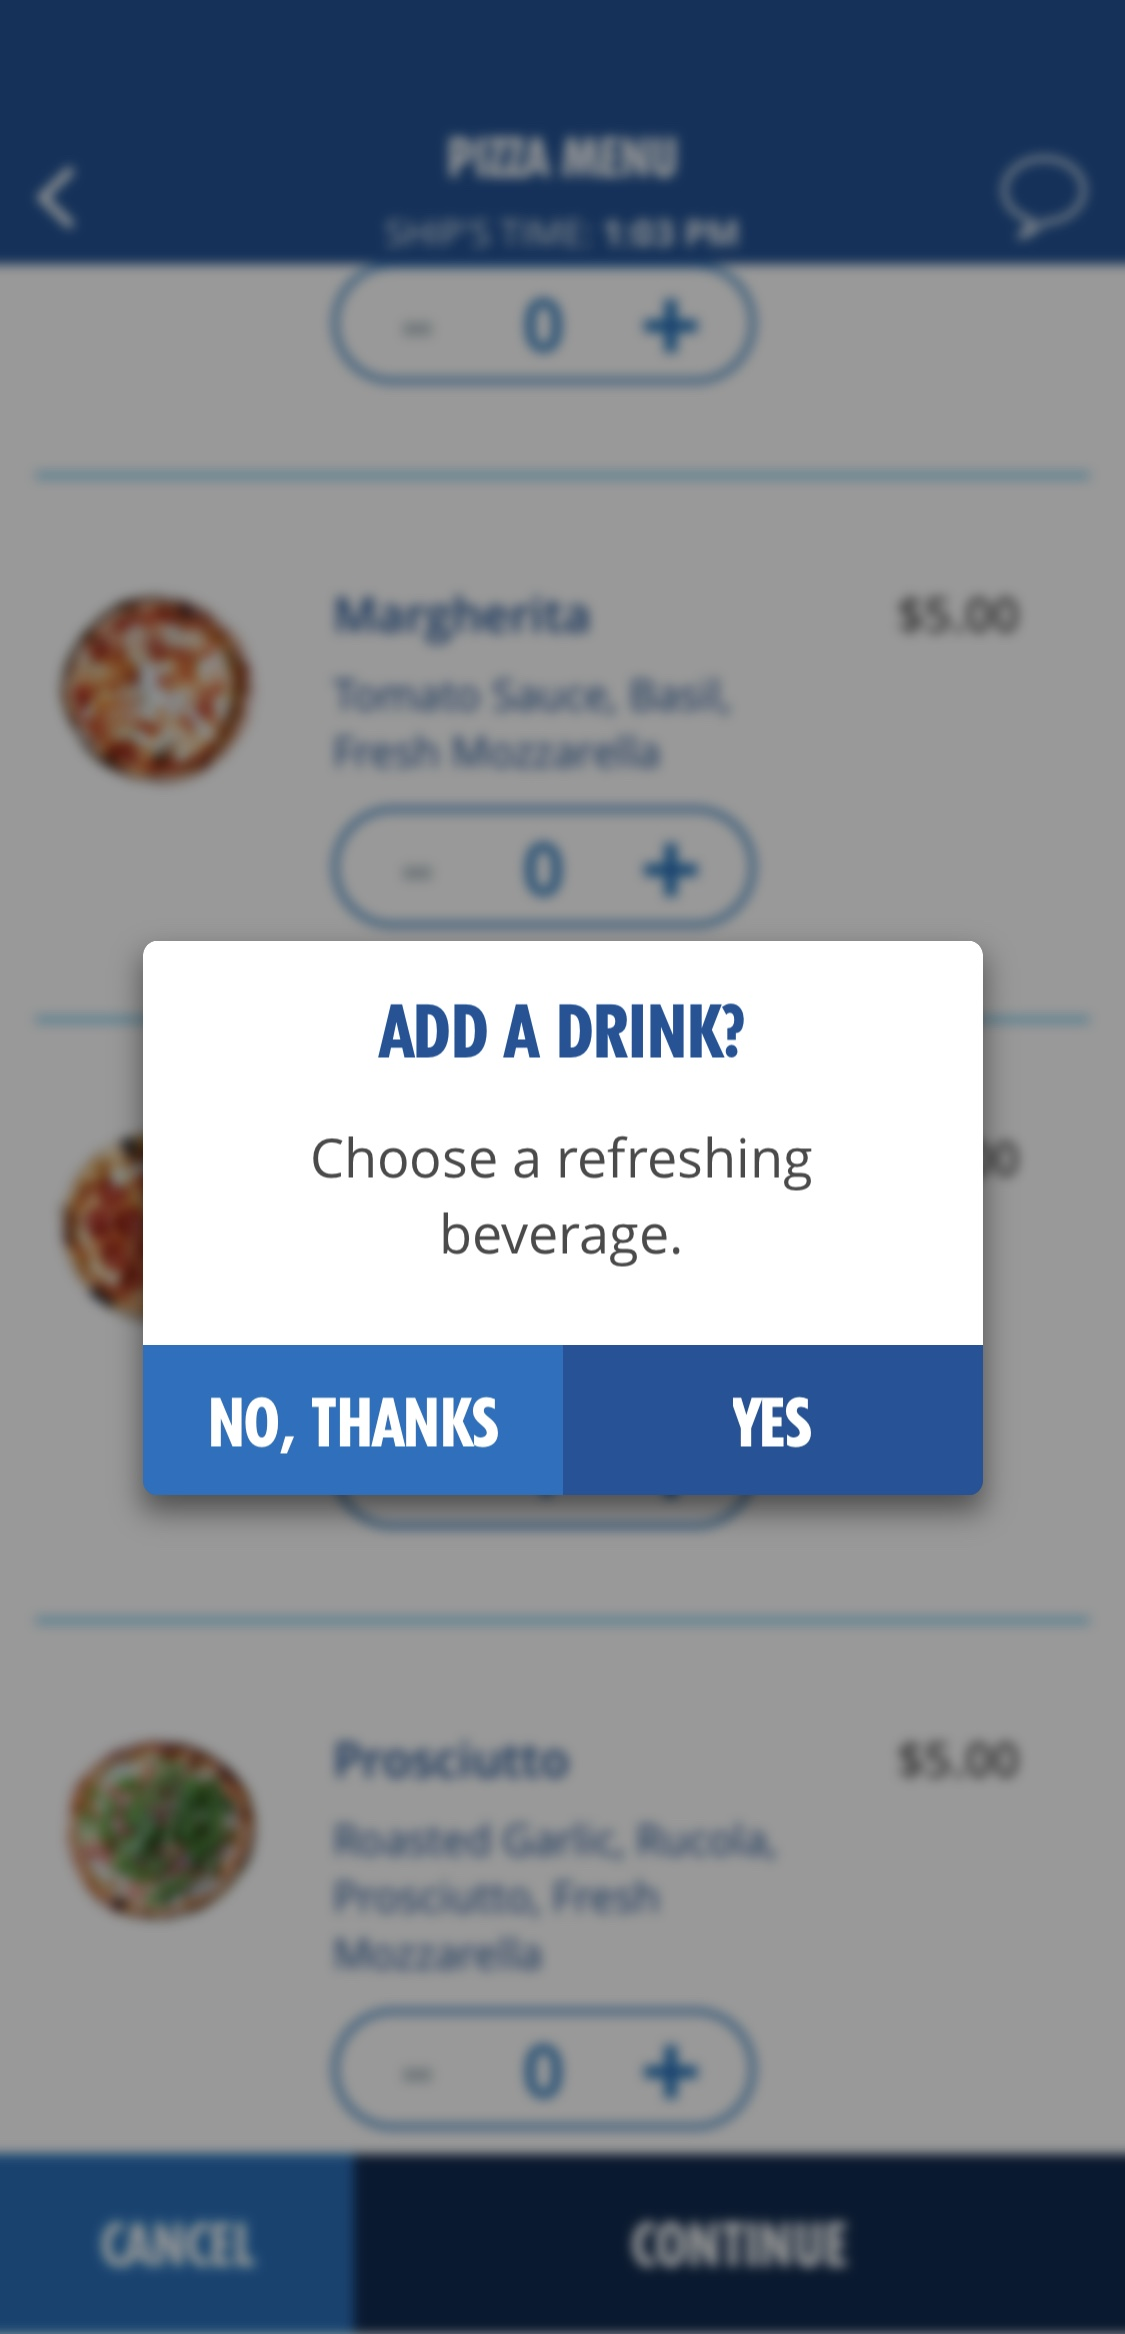 Carnival Cruise Line Adds Drinks to HUB App's 'Pizza Anywhere' Feature